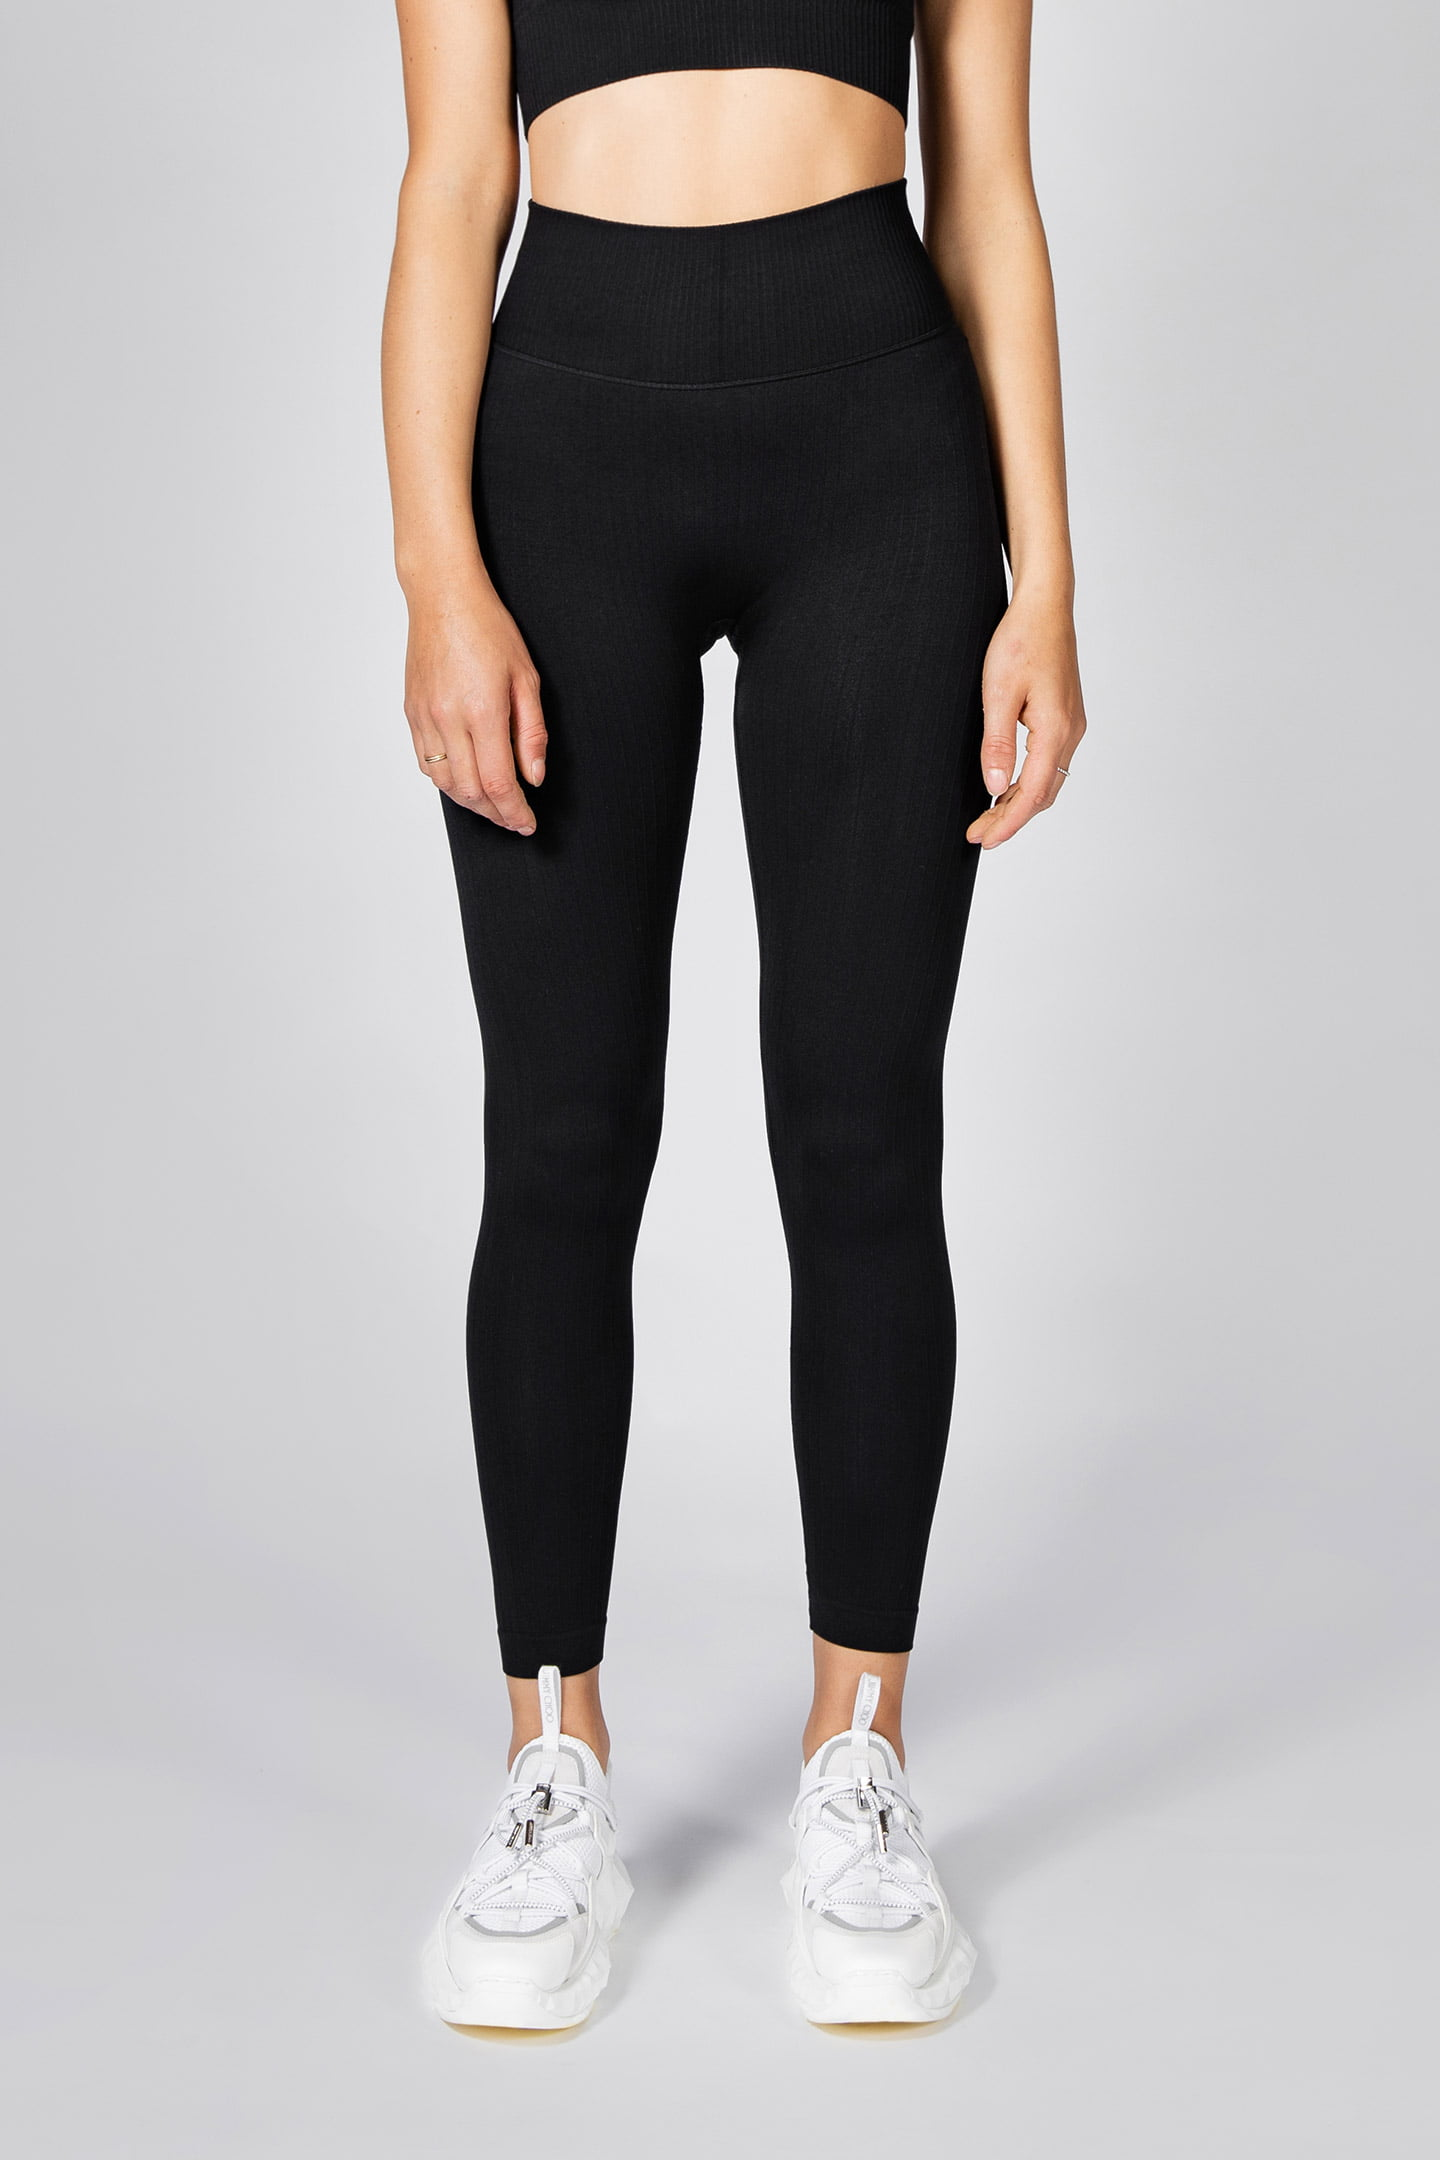 model posing in seamless ribbed legging in black colour